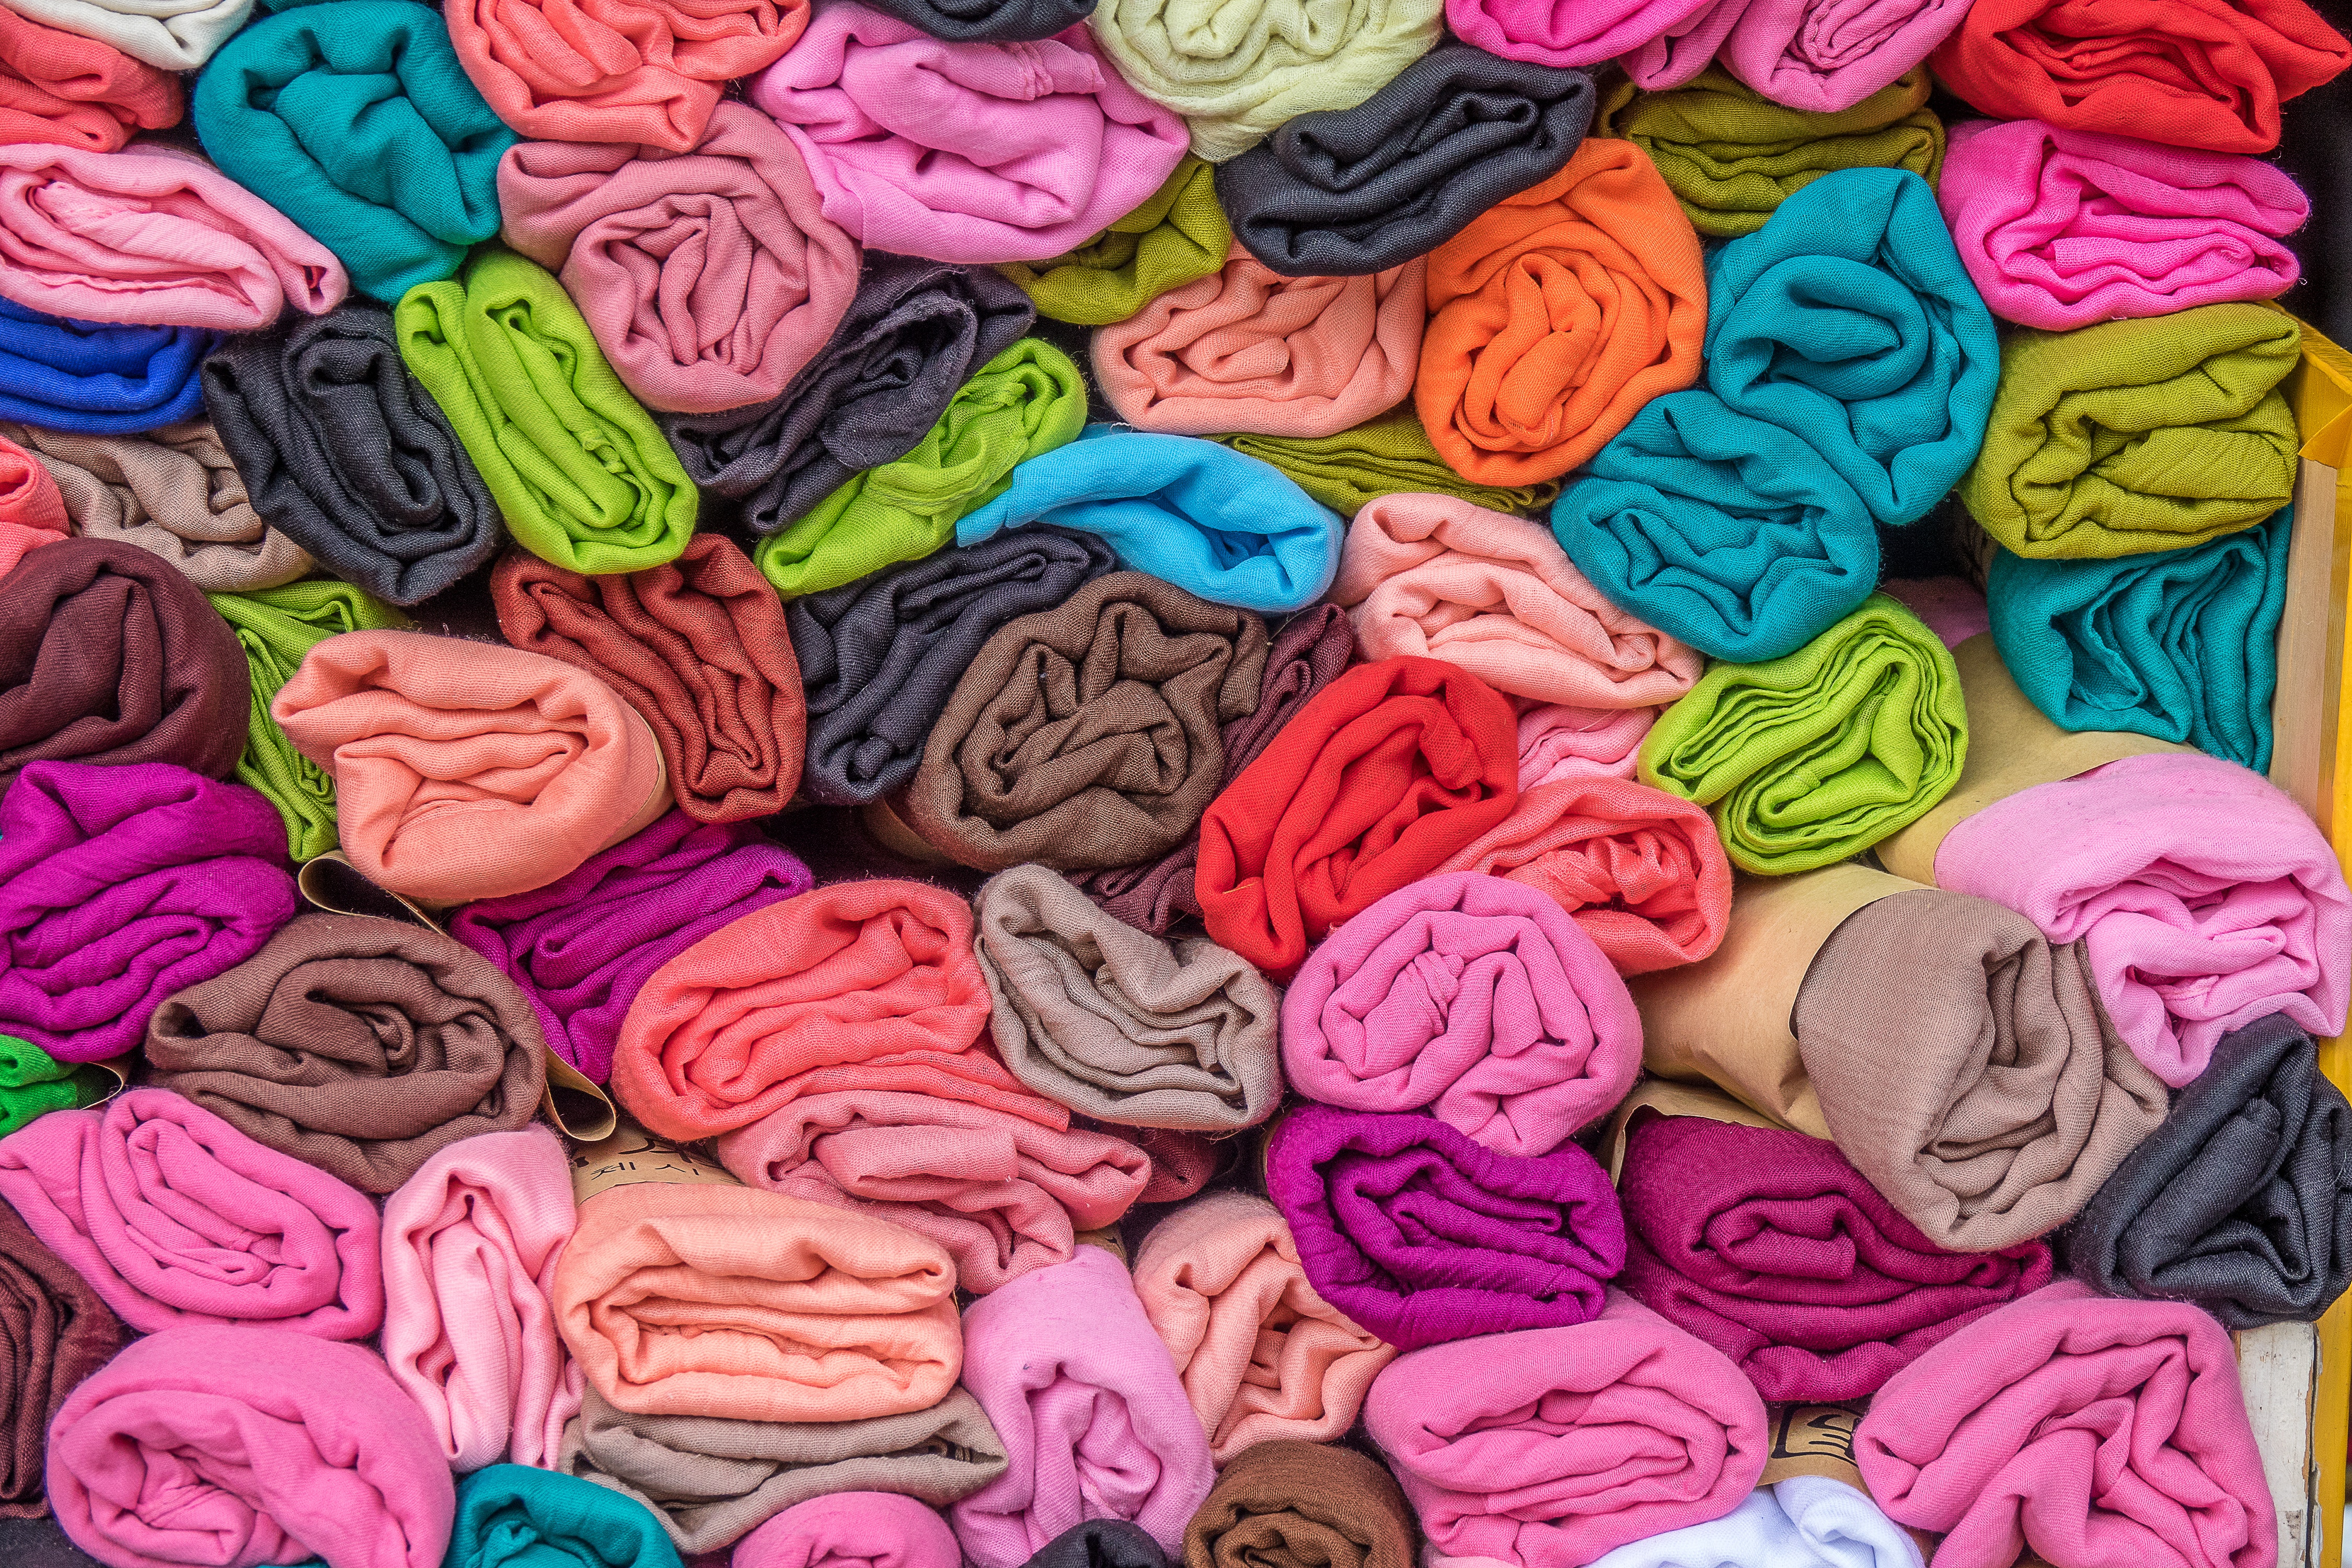 Unraveled: The Life & Death of a Garment